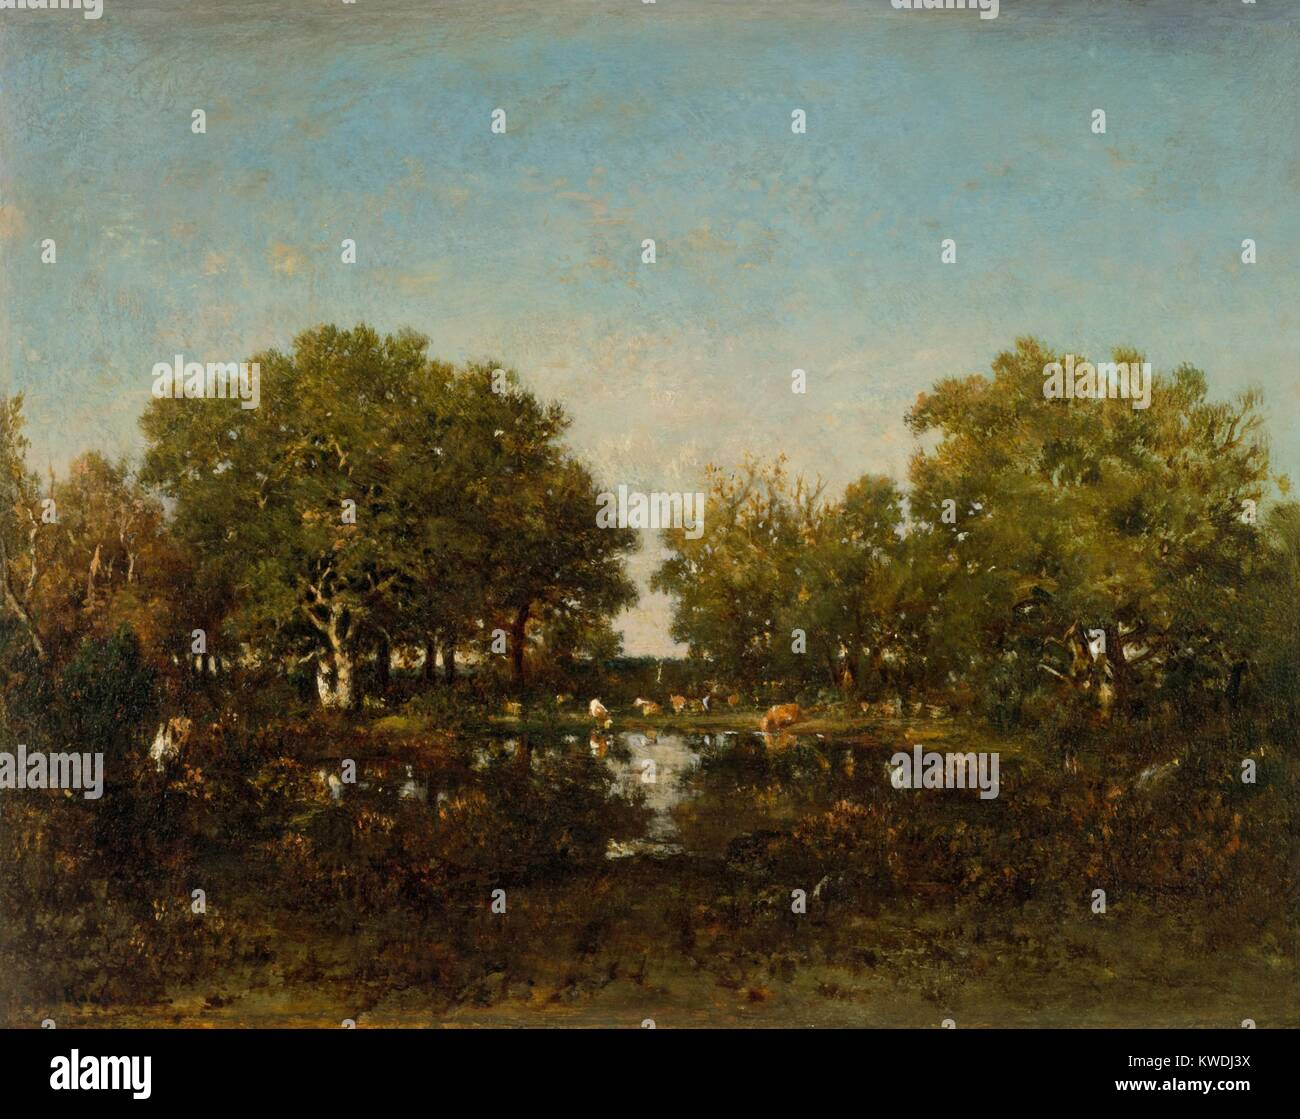 THE POOL, by Theodore Rousseau, 1862-64, French painting, oil on wood. Chambord Forest landscape with cattle drinking - Stock Image